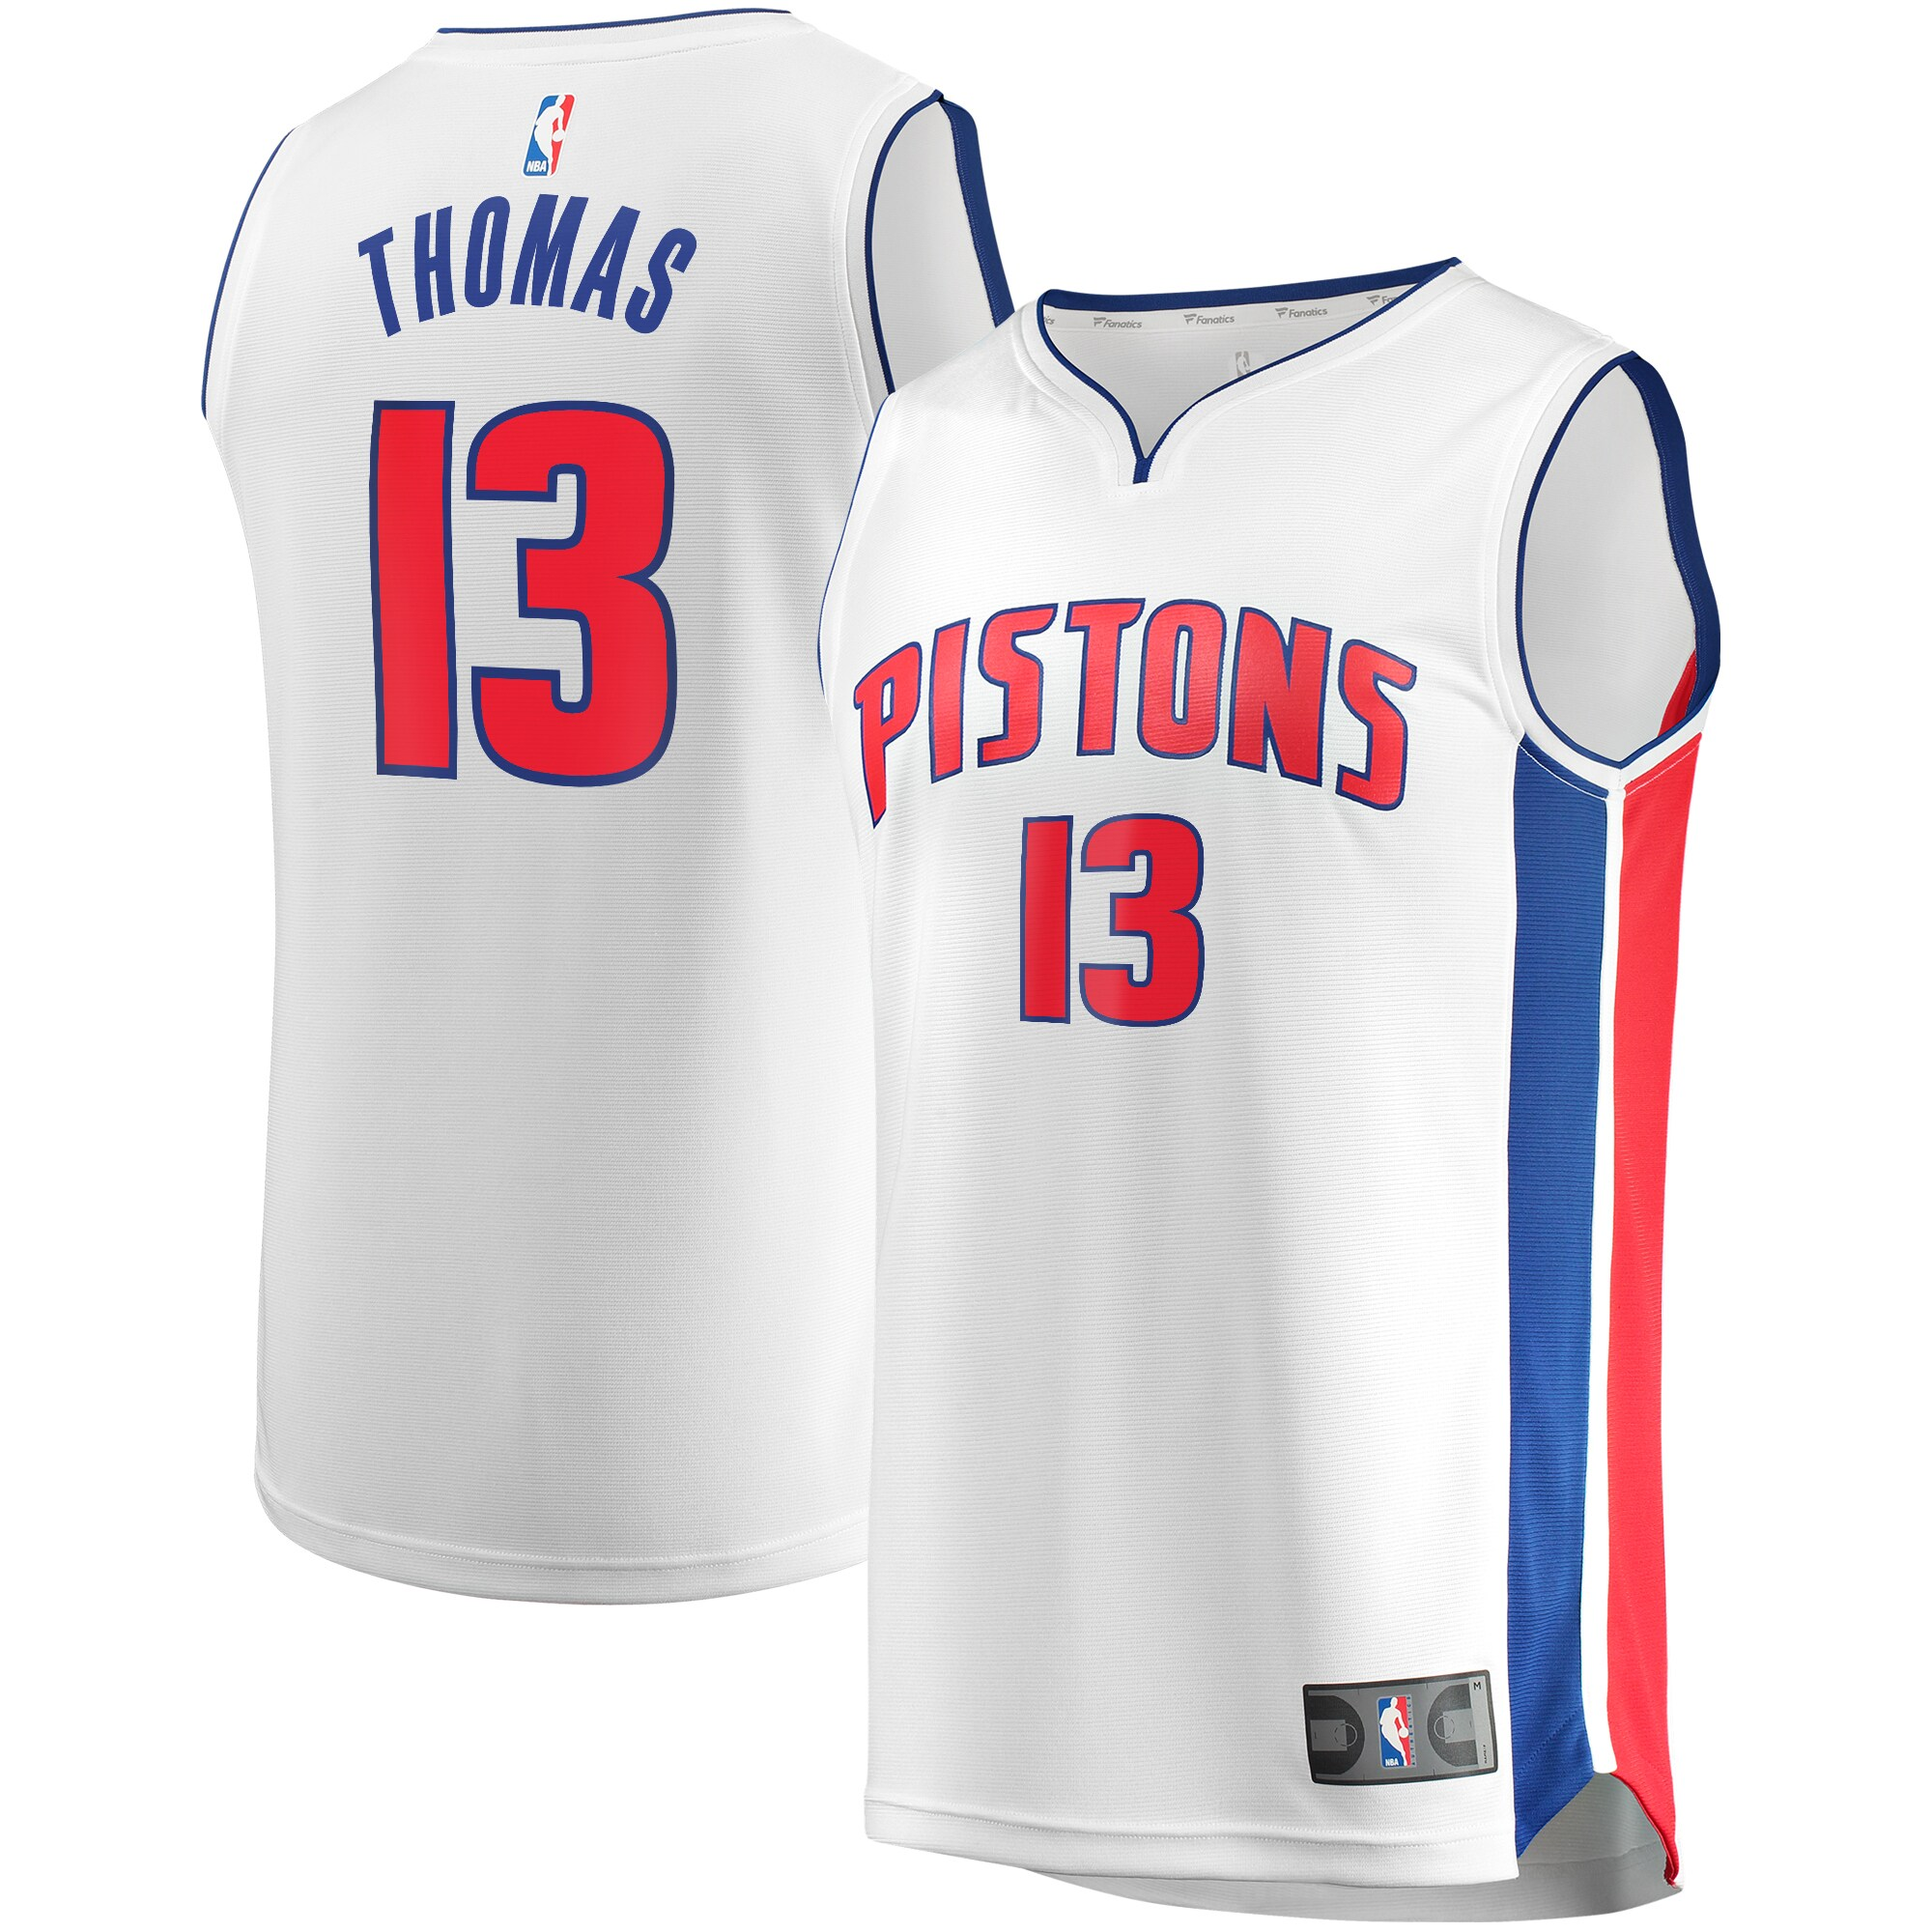 Khyri Thomas Detroit Pistons Fanatics Branded Youth Fast Break Replica Player Jersey - Association Edition - White